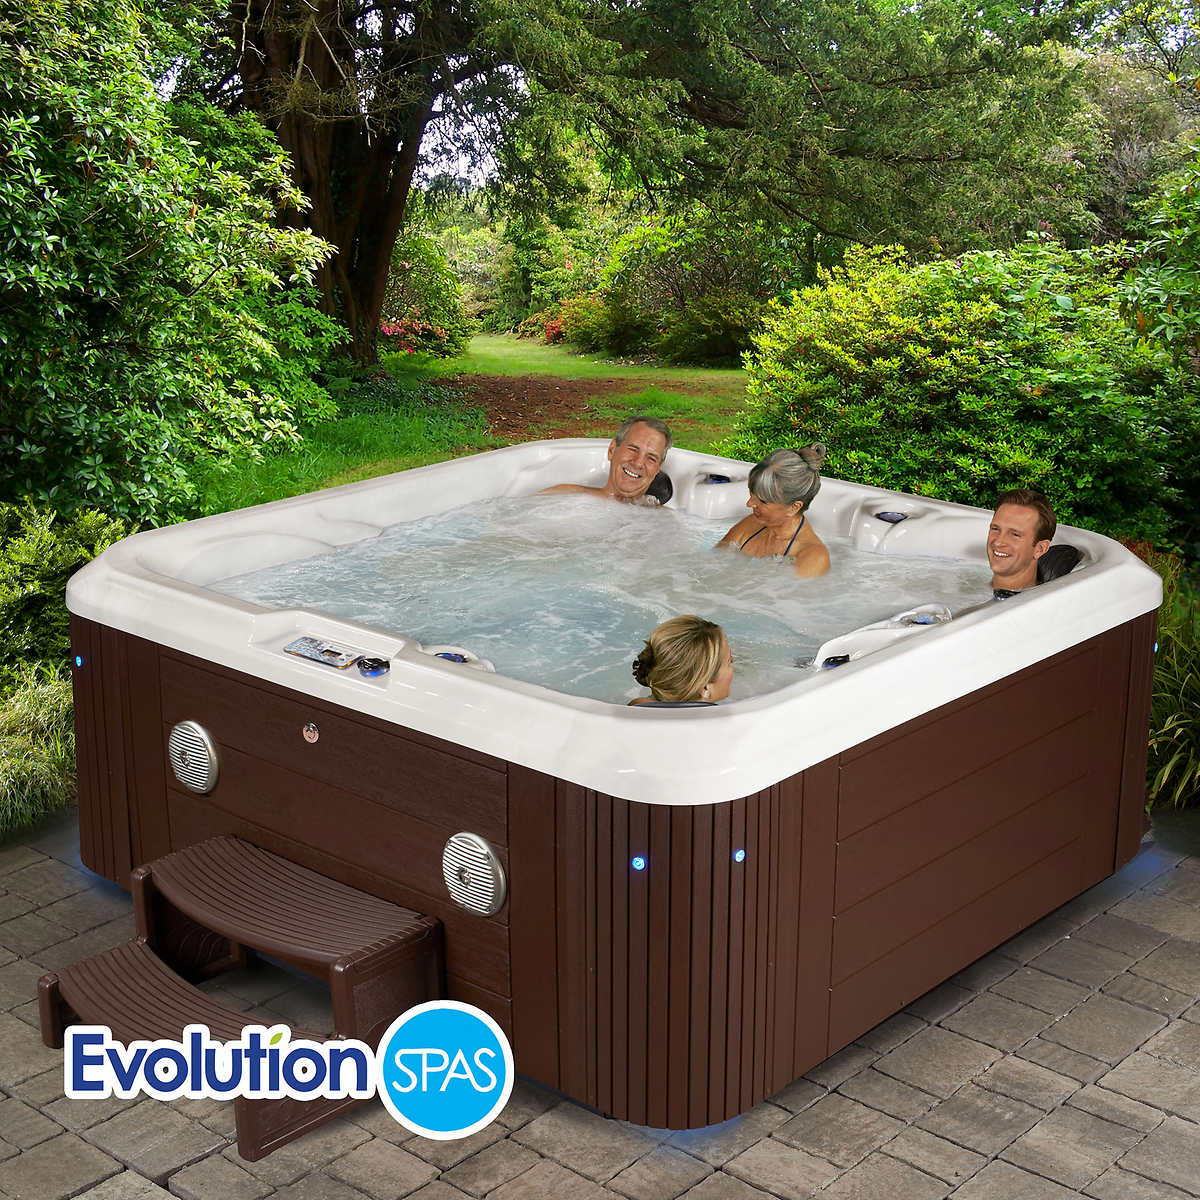 Evolution Spas Hampton 90 Jet 6 Person Spa Accommodates